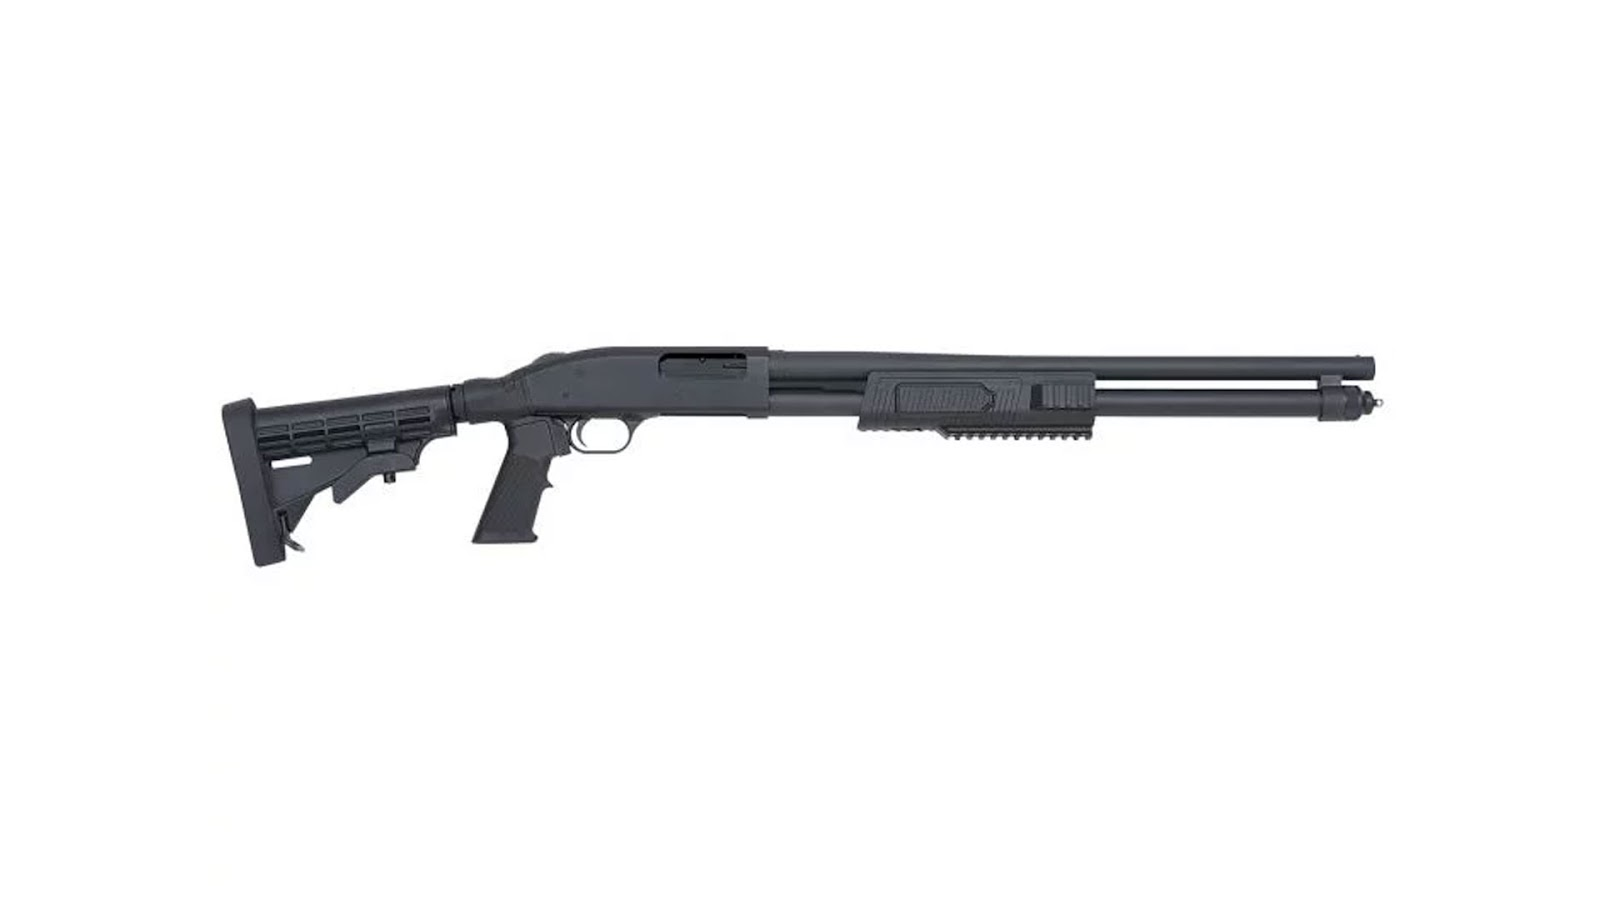 Mossberg 590 pump shotgun